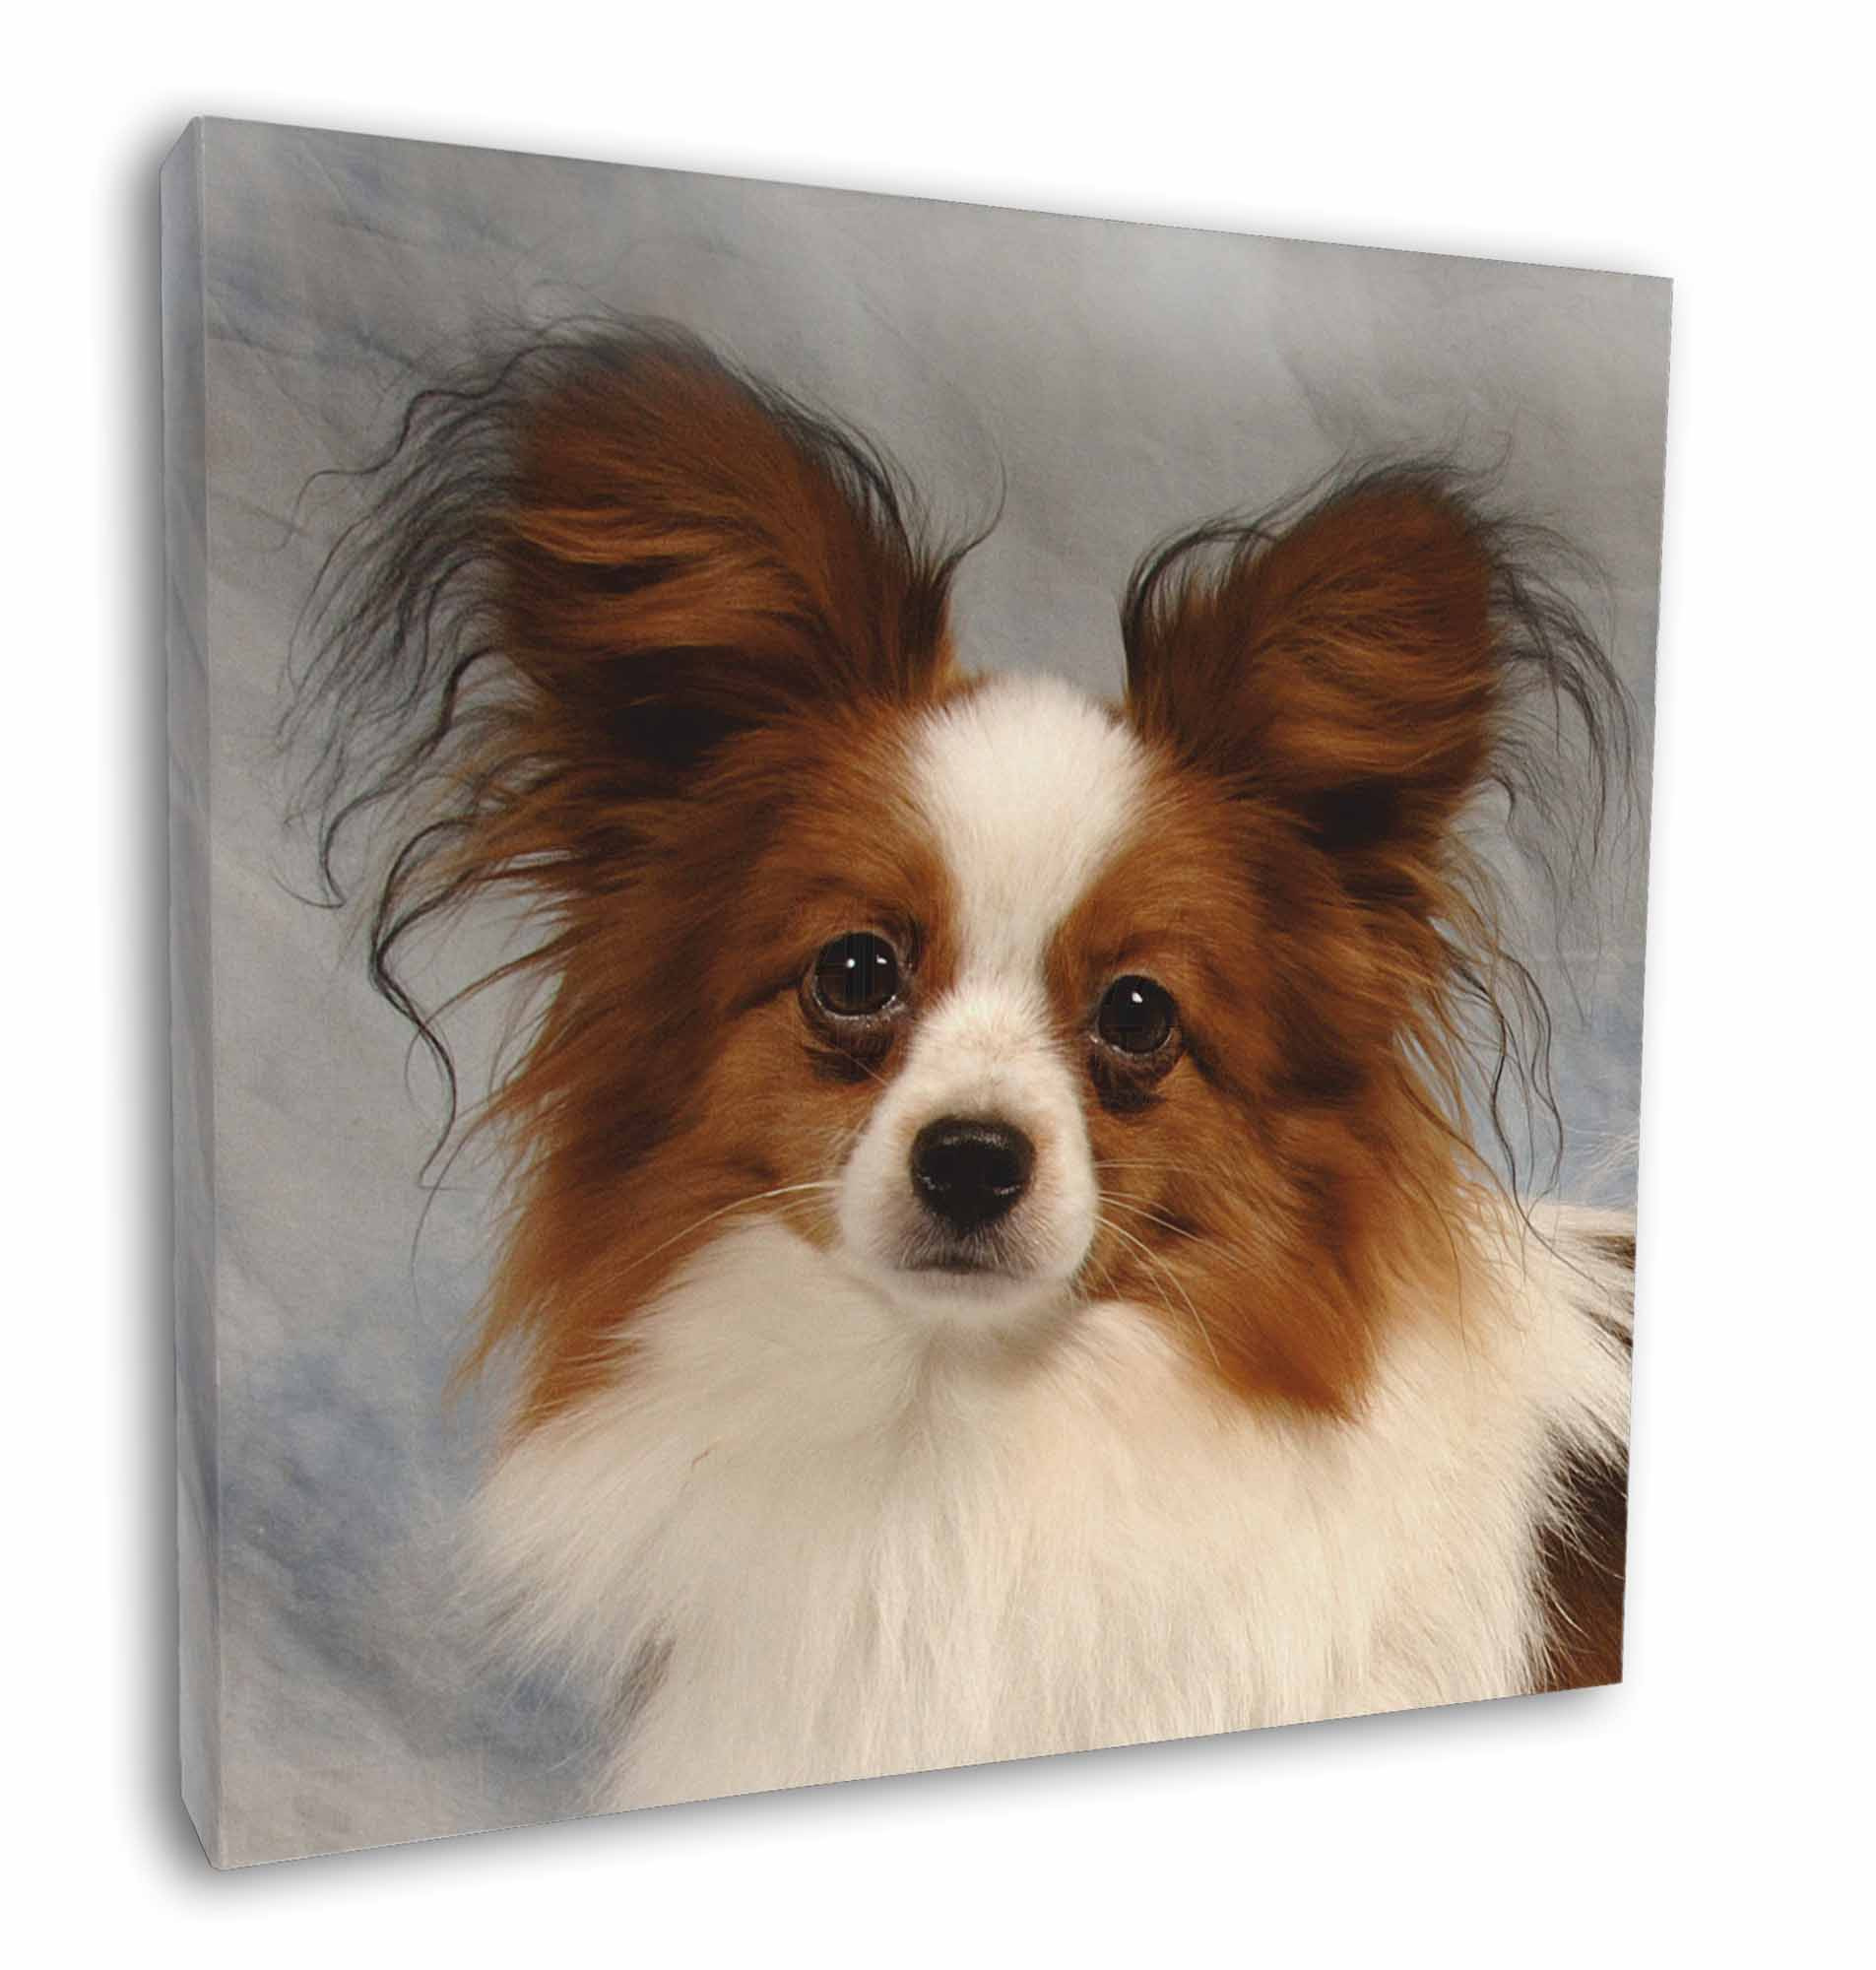 Your Papillon Dog/'s Photo on a Business Card Holder